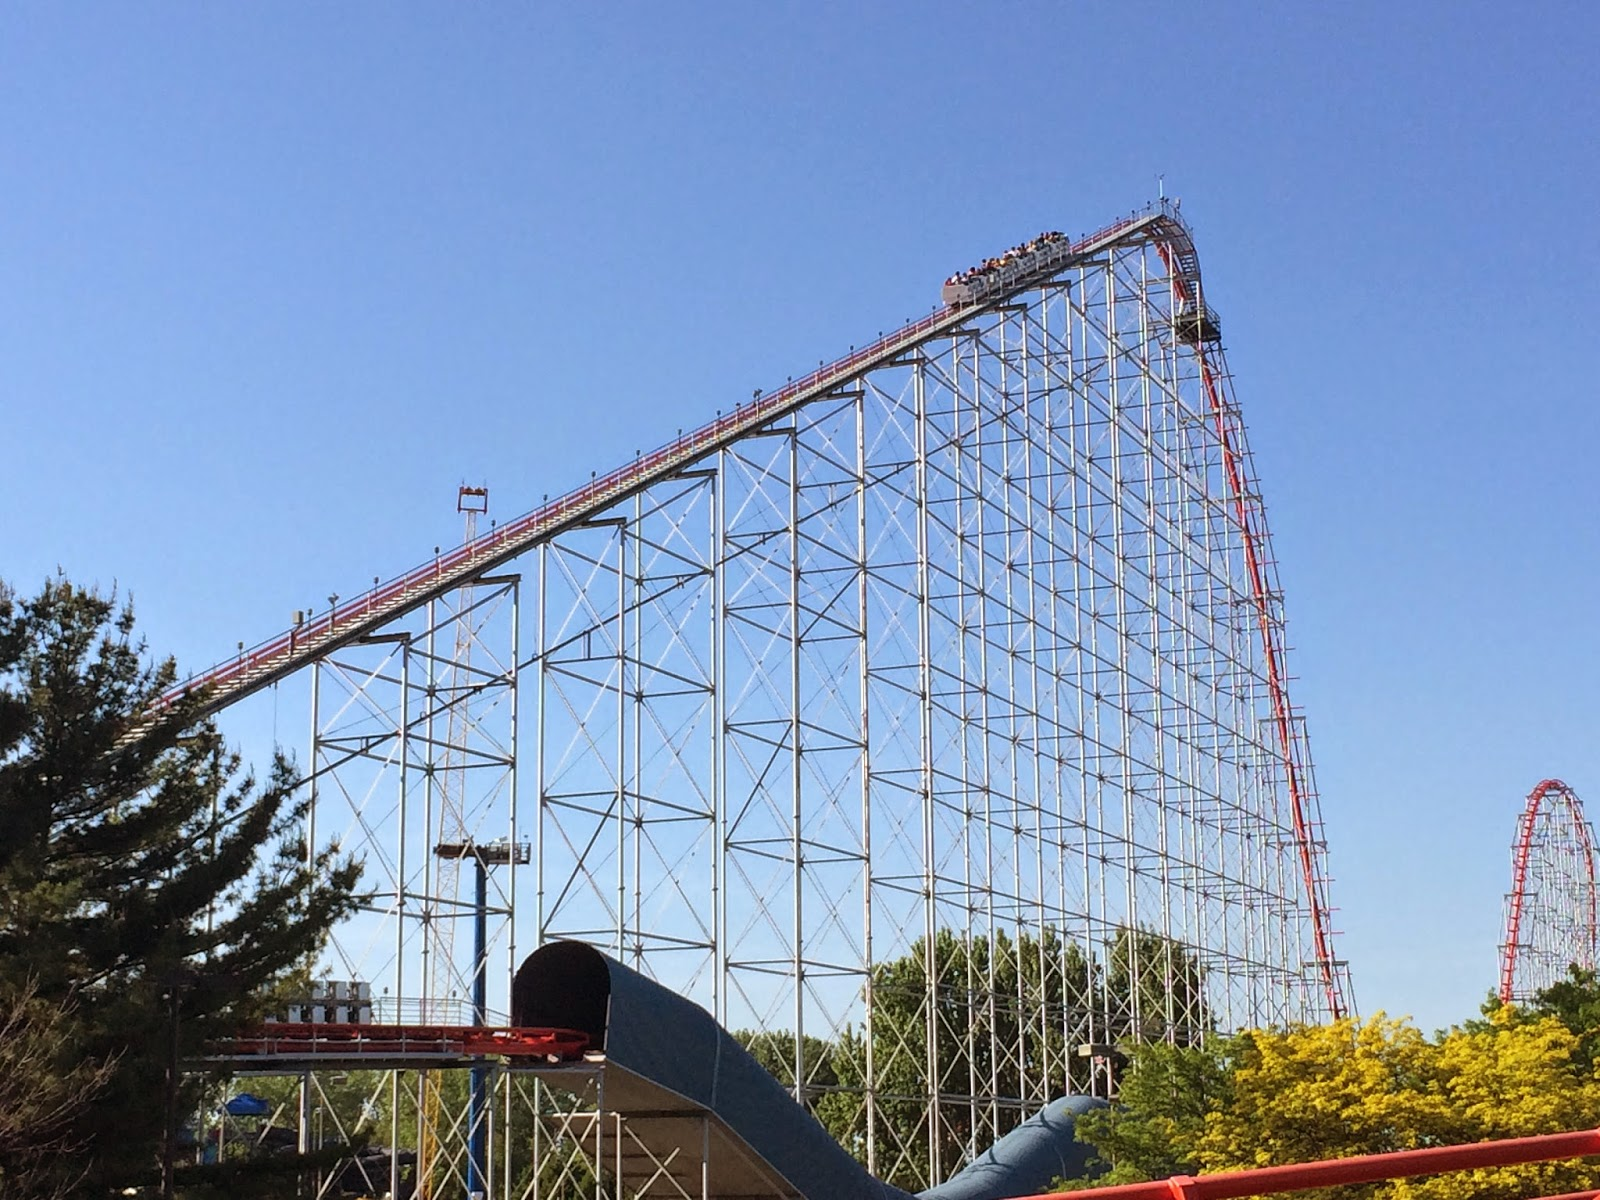 Magnum Cedar Point Roller Coaster